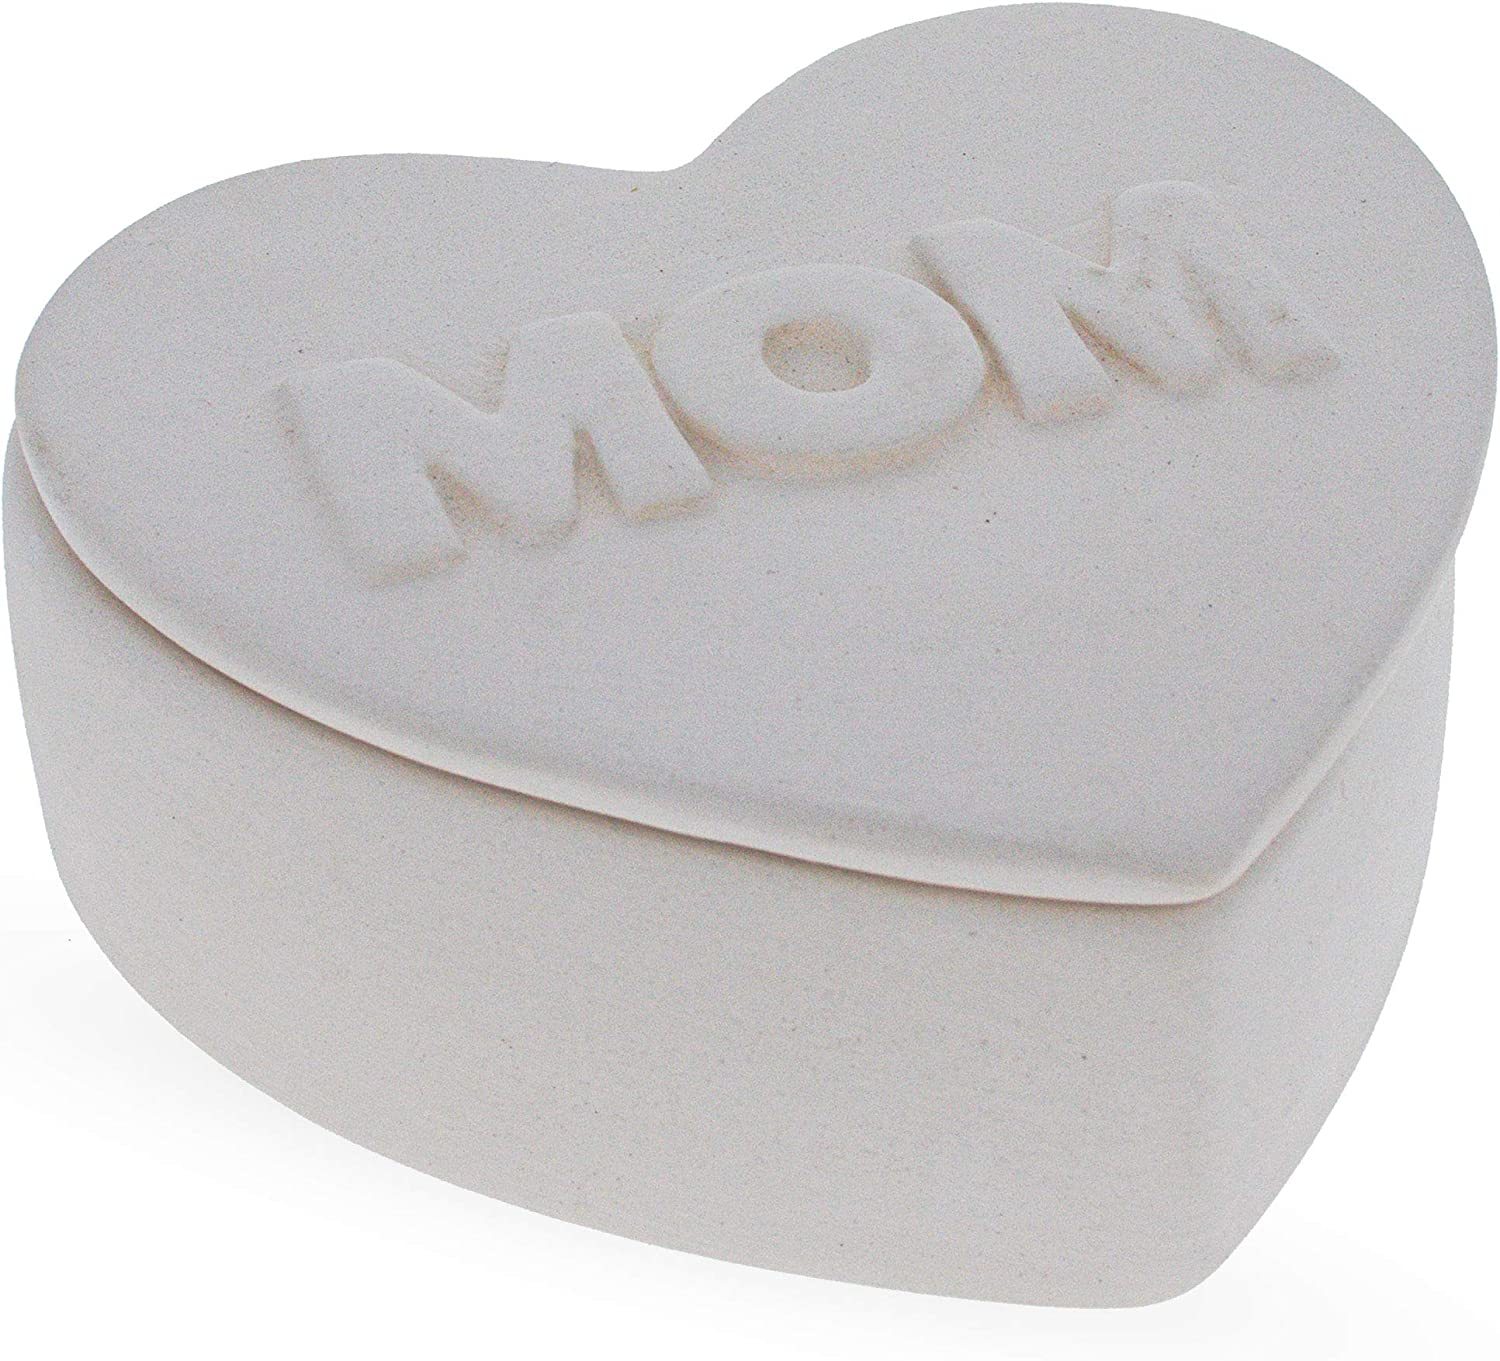 Cheap SALE Start Blank Unpainted Ceramic DIY Mom Box Inches Trinket 70% OFF Outlet 3.8